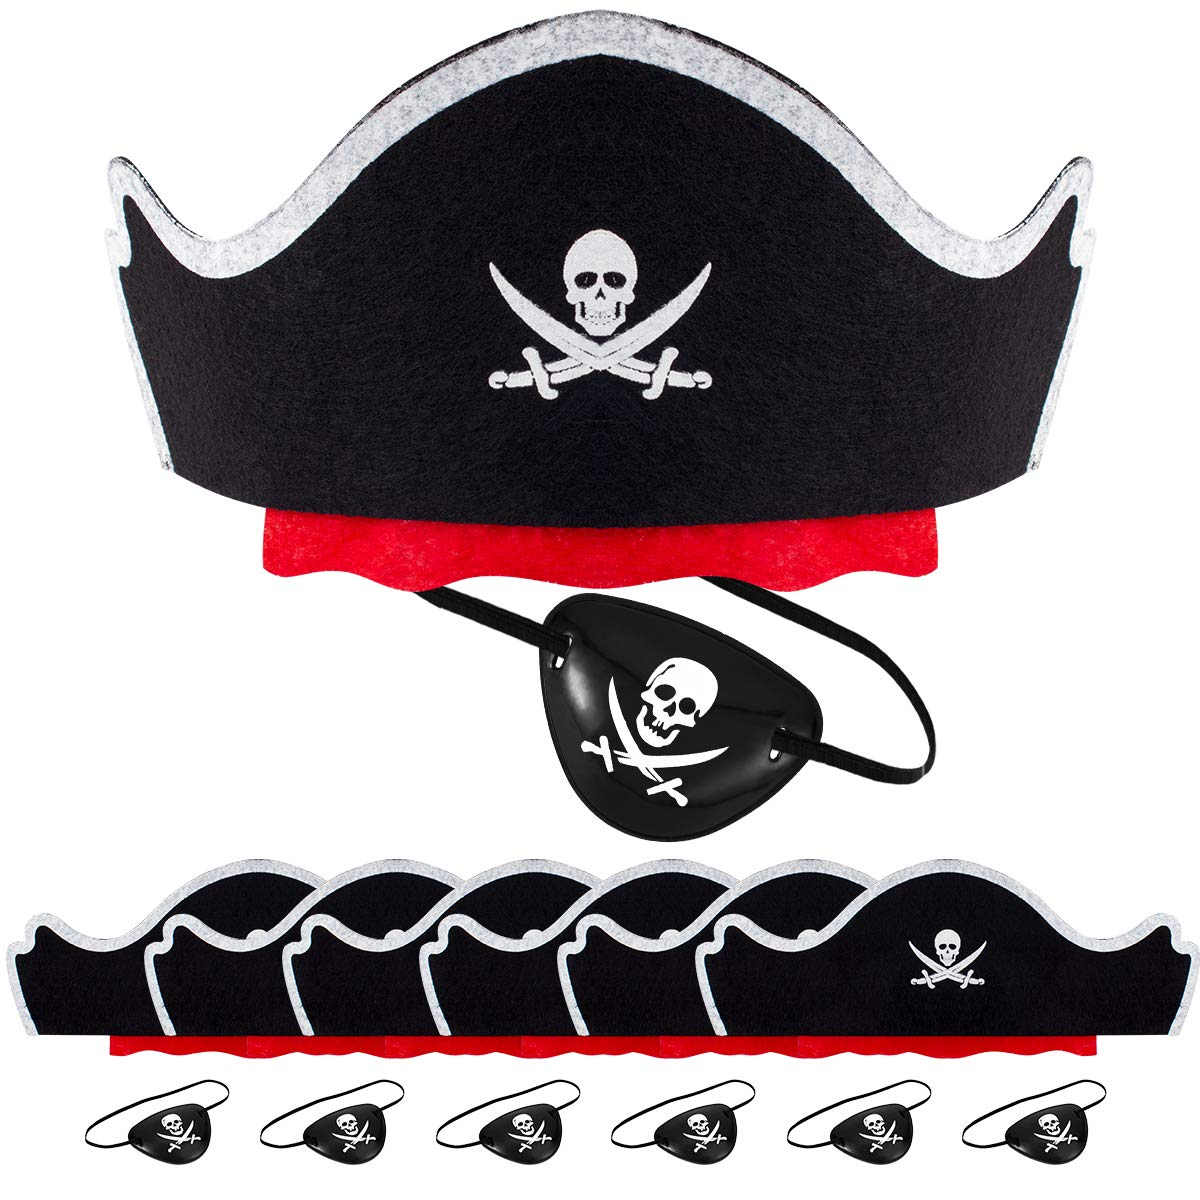 Alphatool 12 Pcs Skull Print Pirate Hat Eye Patches Set, 6 Pieces Caribbean Pirate Captain Hat and 6 Pieces Black Pirate Eye Mask for Pirate Party, Cosplay, Dress Up Theme Party, Halloween